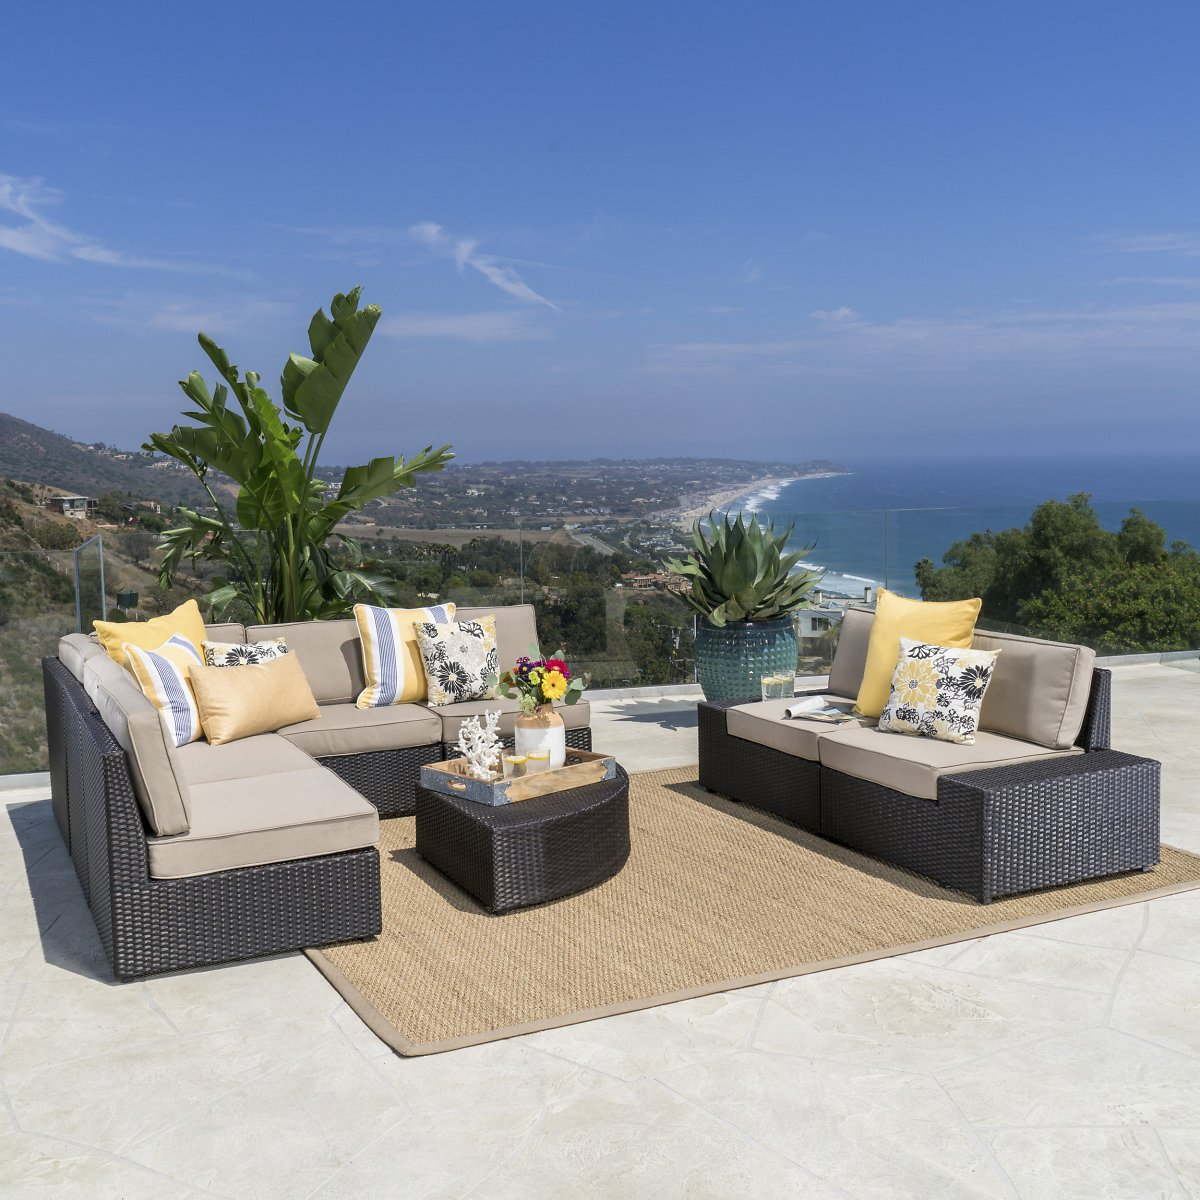 Keyston Outdoor 8 Piece Wicker Sectional with Beige Cushions